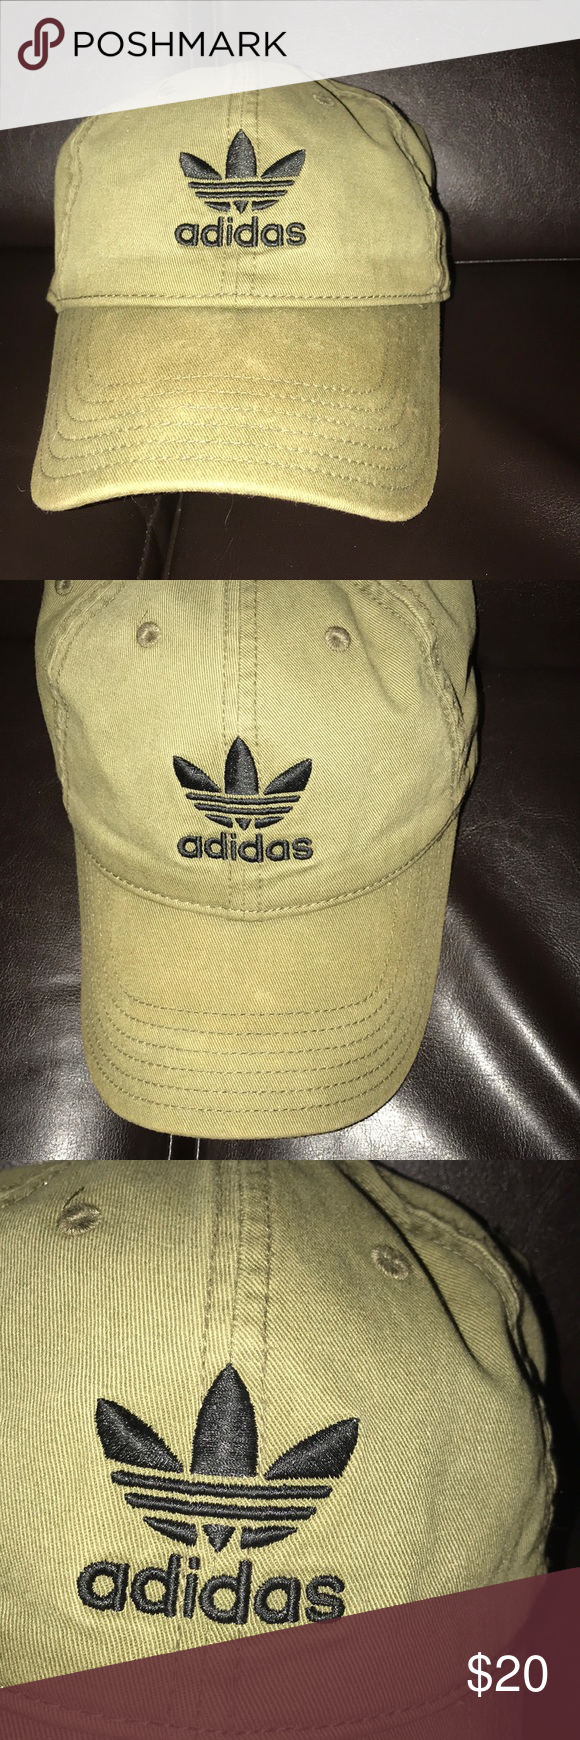 d3a027753a6ec ADIDAS HAT Army green and black adidas hat adidas Accessories Hats